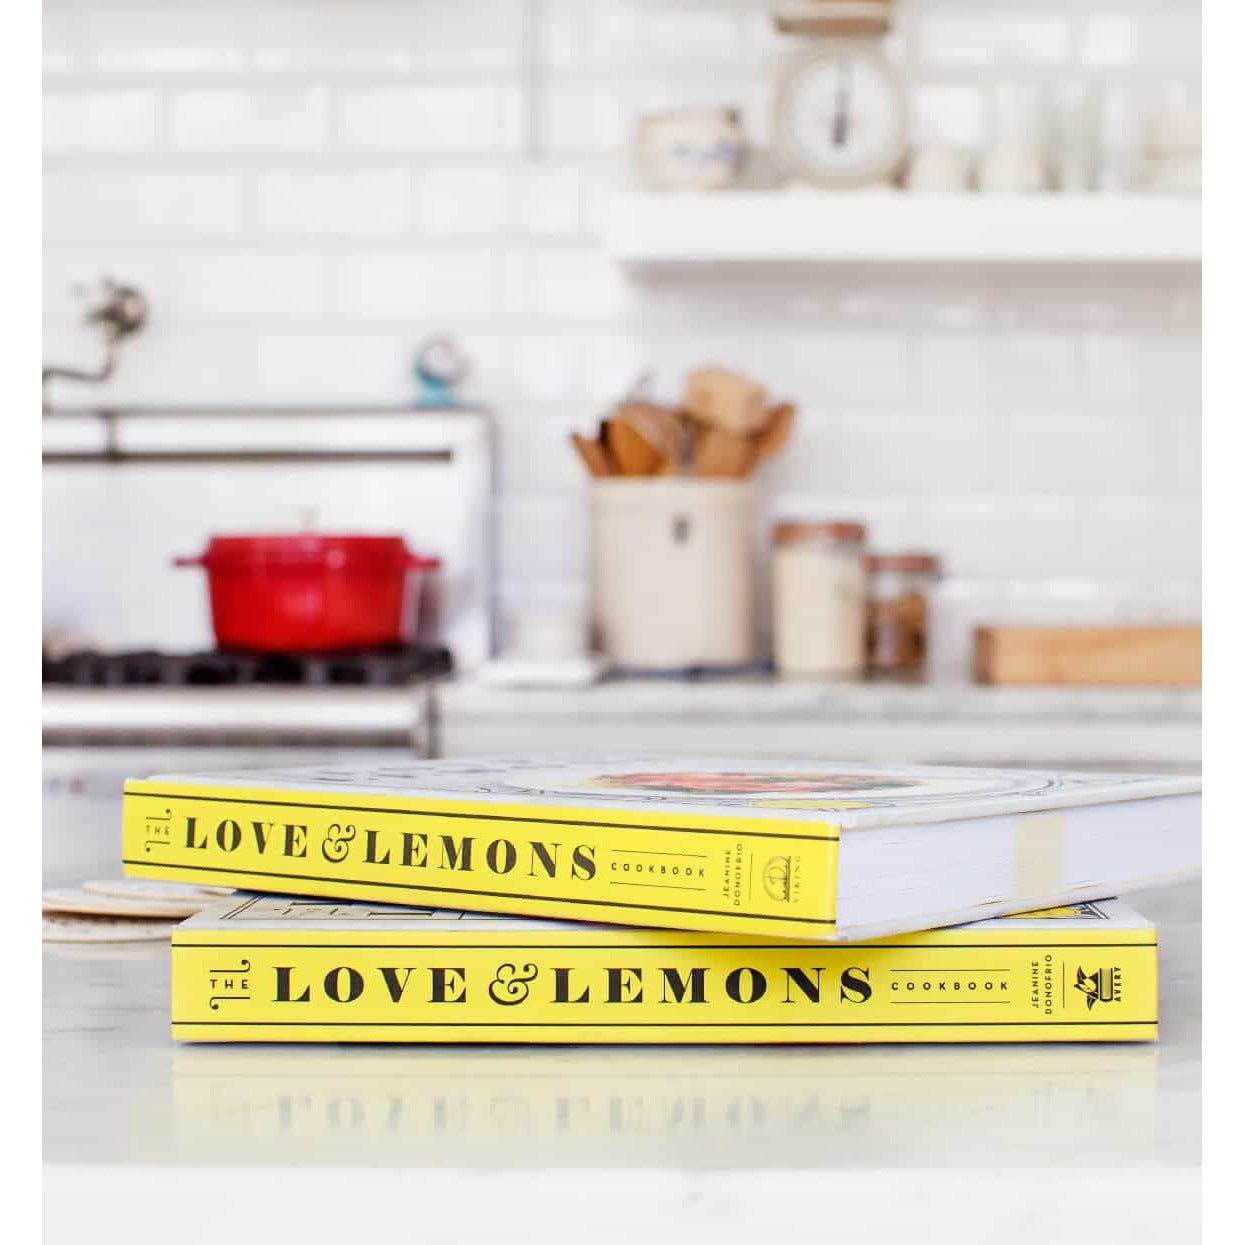 The Love and Lemons Cookbook: The spine of the book is yellow with the name of the book down the side.